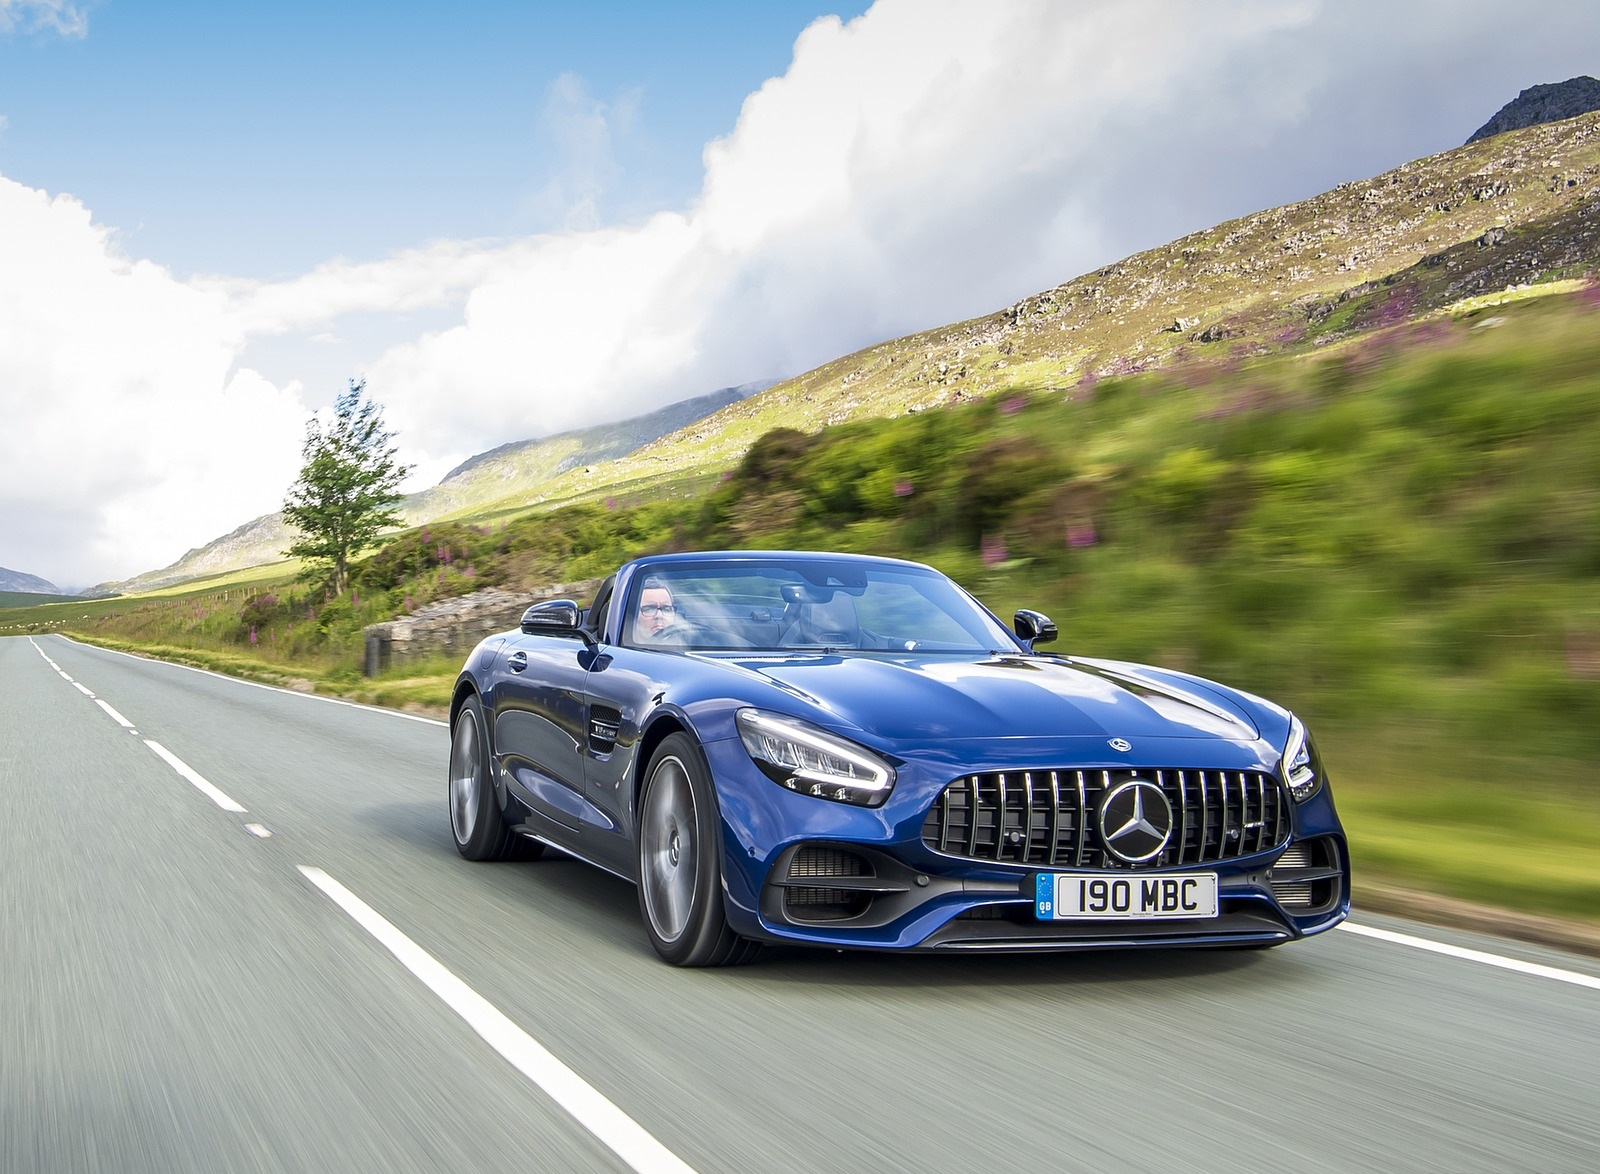 2020 Mercedes-AMG GT S Roadster (UK-Spec) Front Three-Quarter Wallpapers (6)